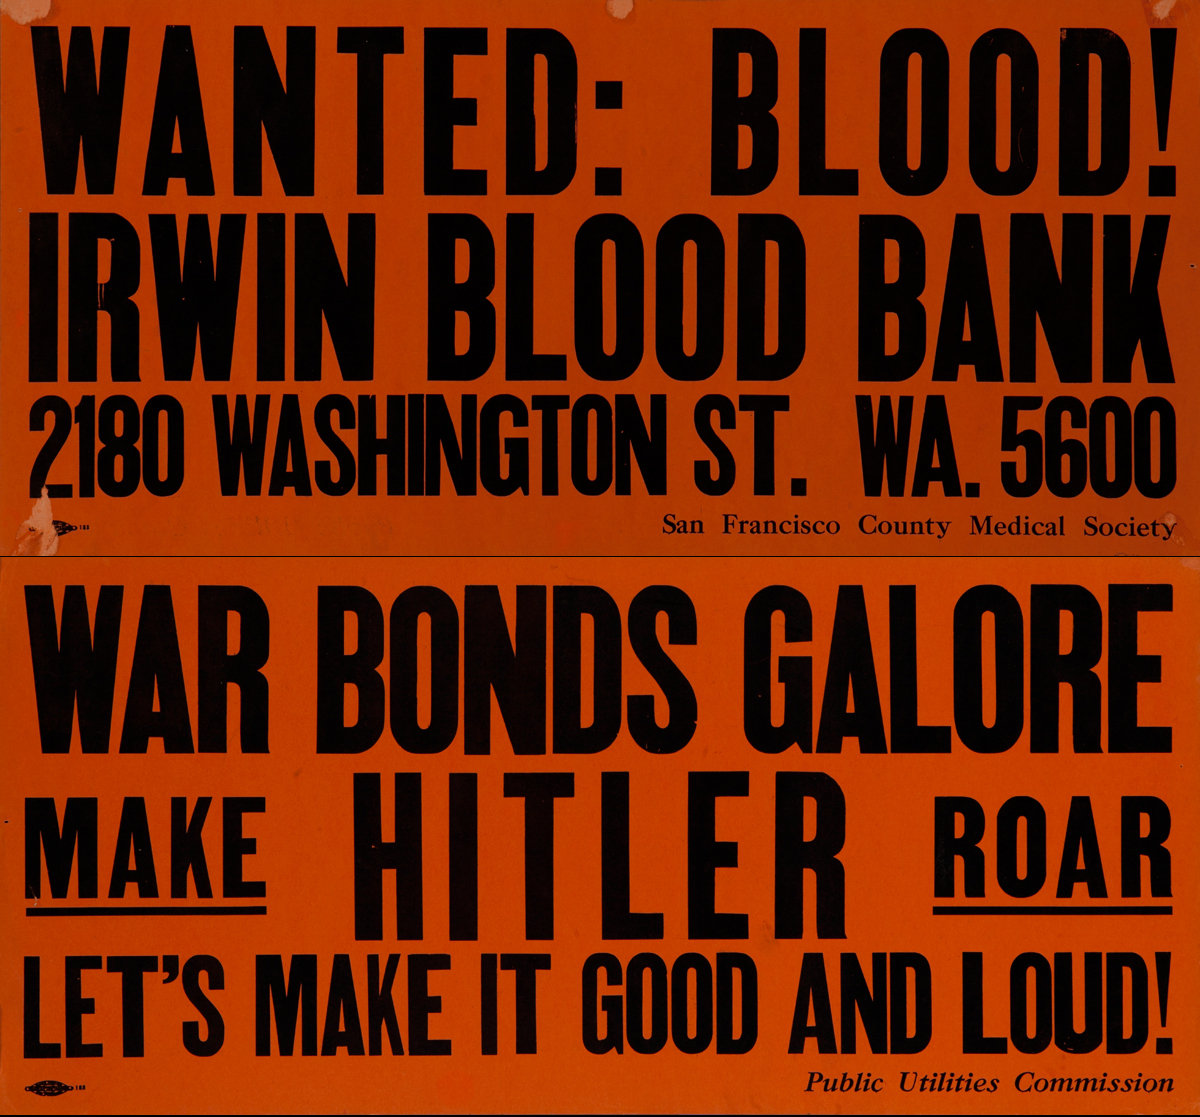 War Bond Galore Make Hitler Roar Let's Make it Good and Loud<br>2 Sided WWII Public Utilities Commision Poster